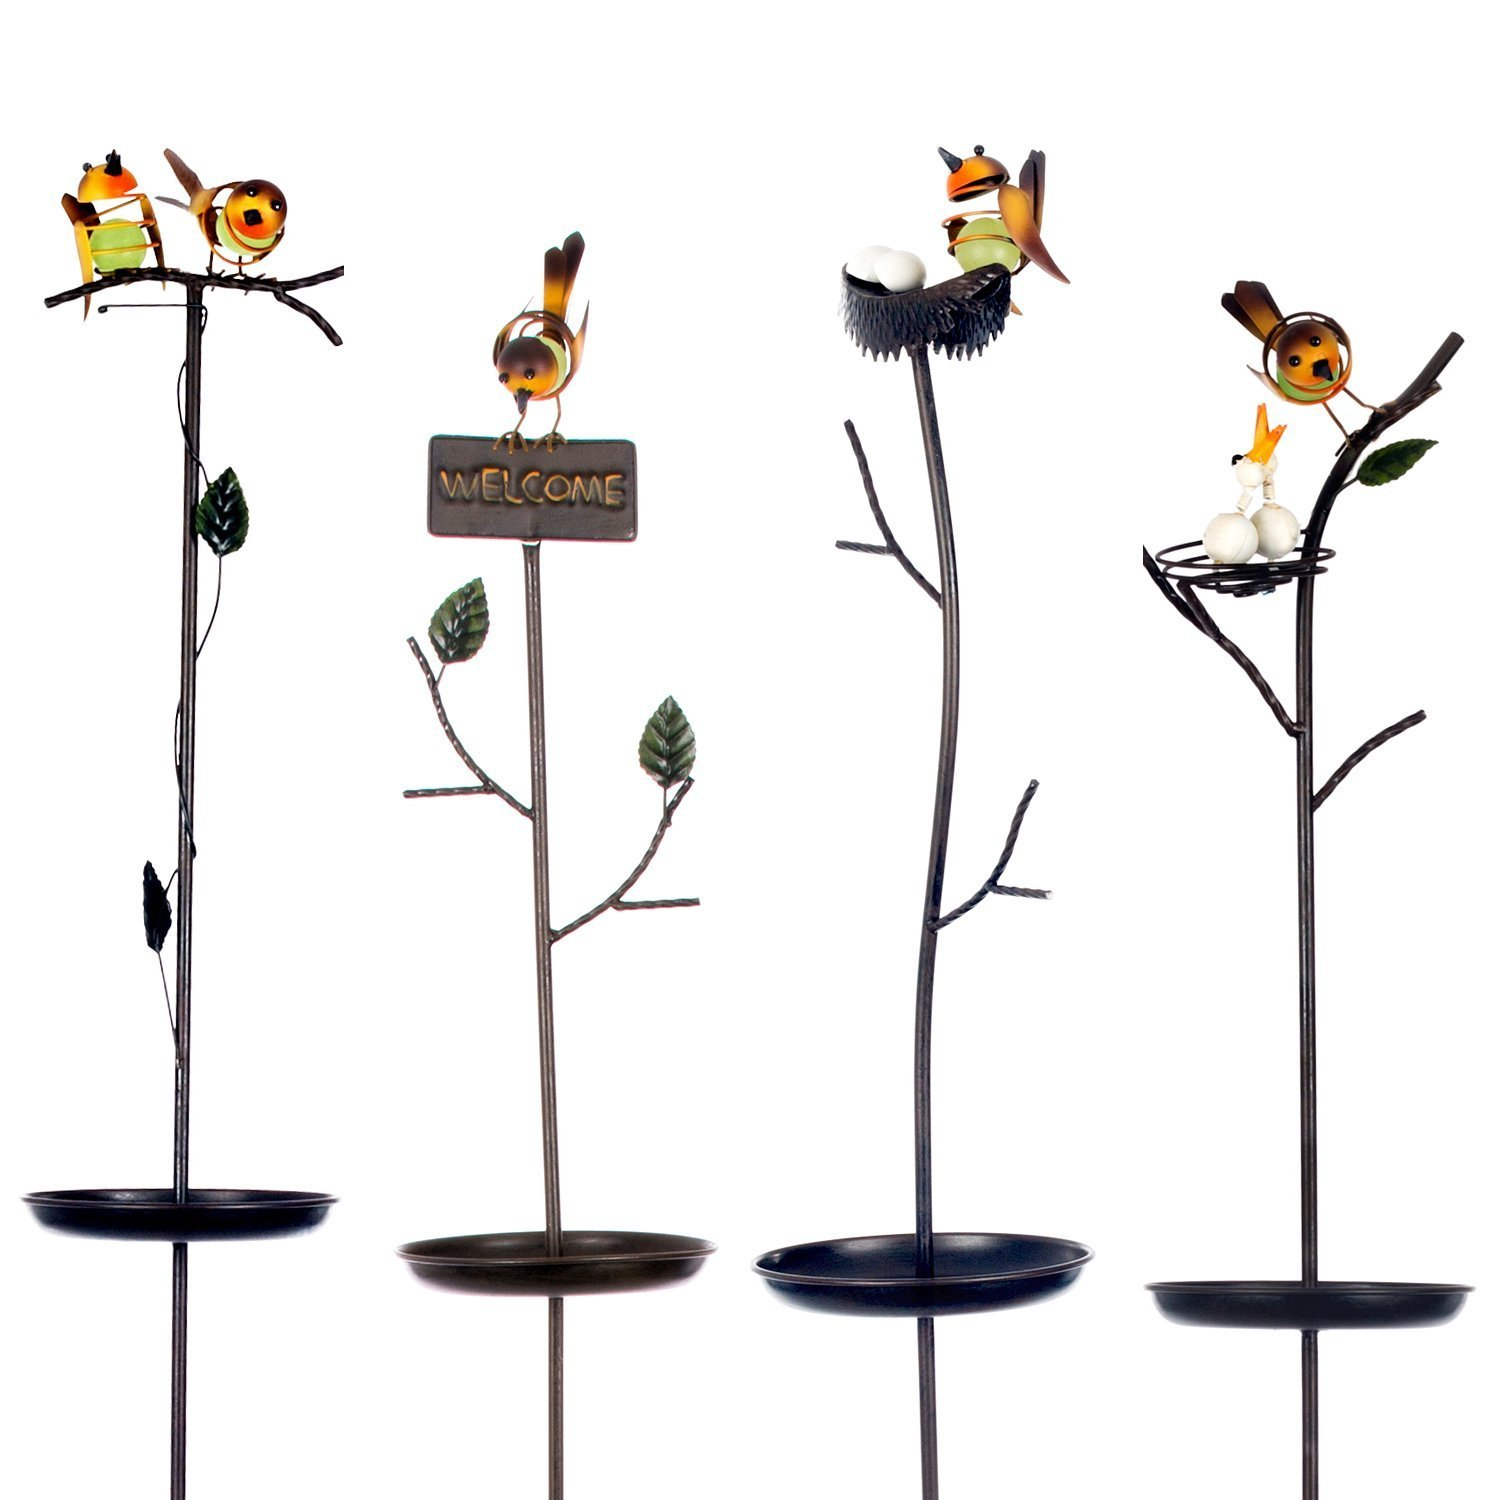 4 x Bird Feeding stations - Ornate metal design with welcome sign Oakthrift